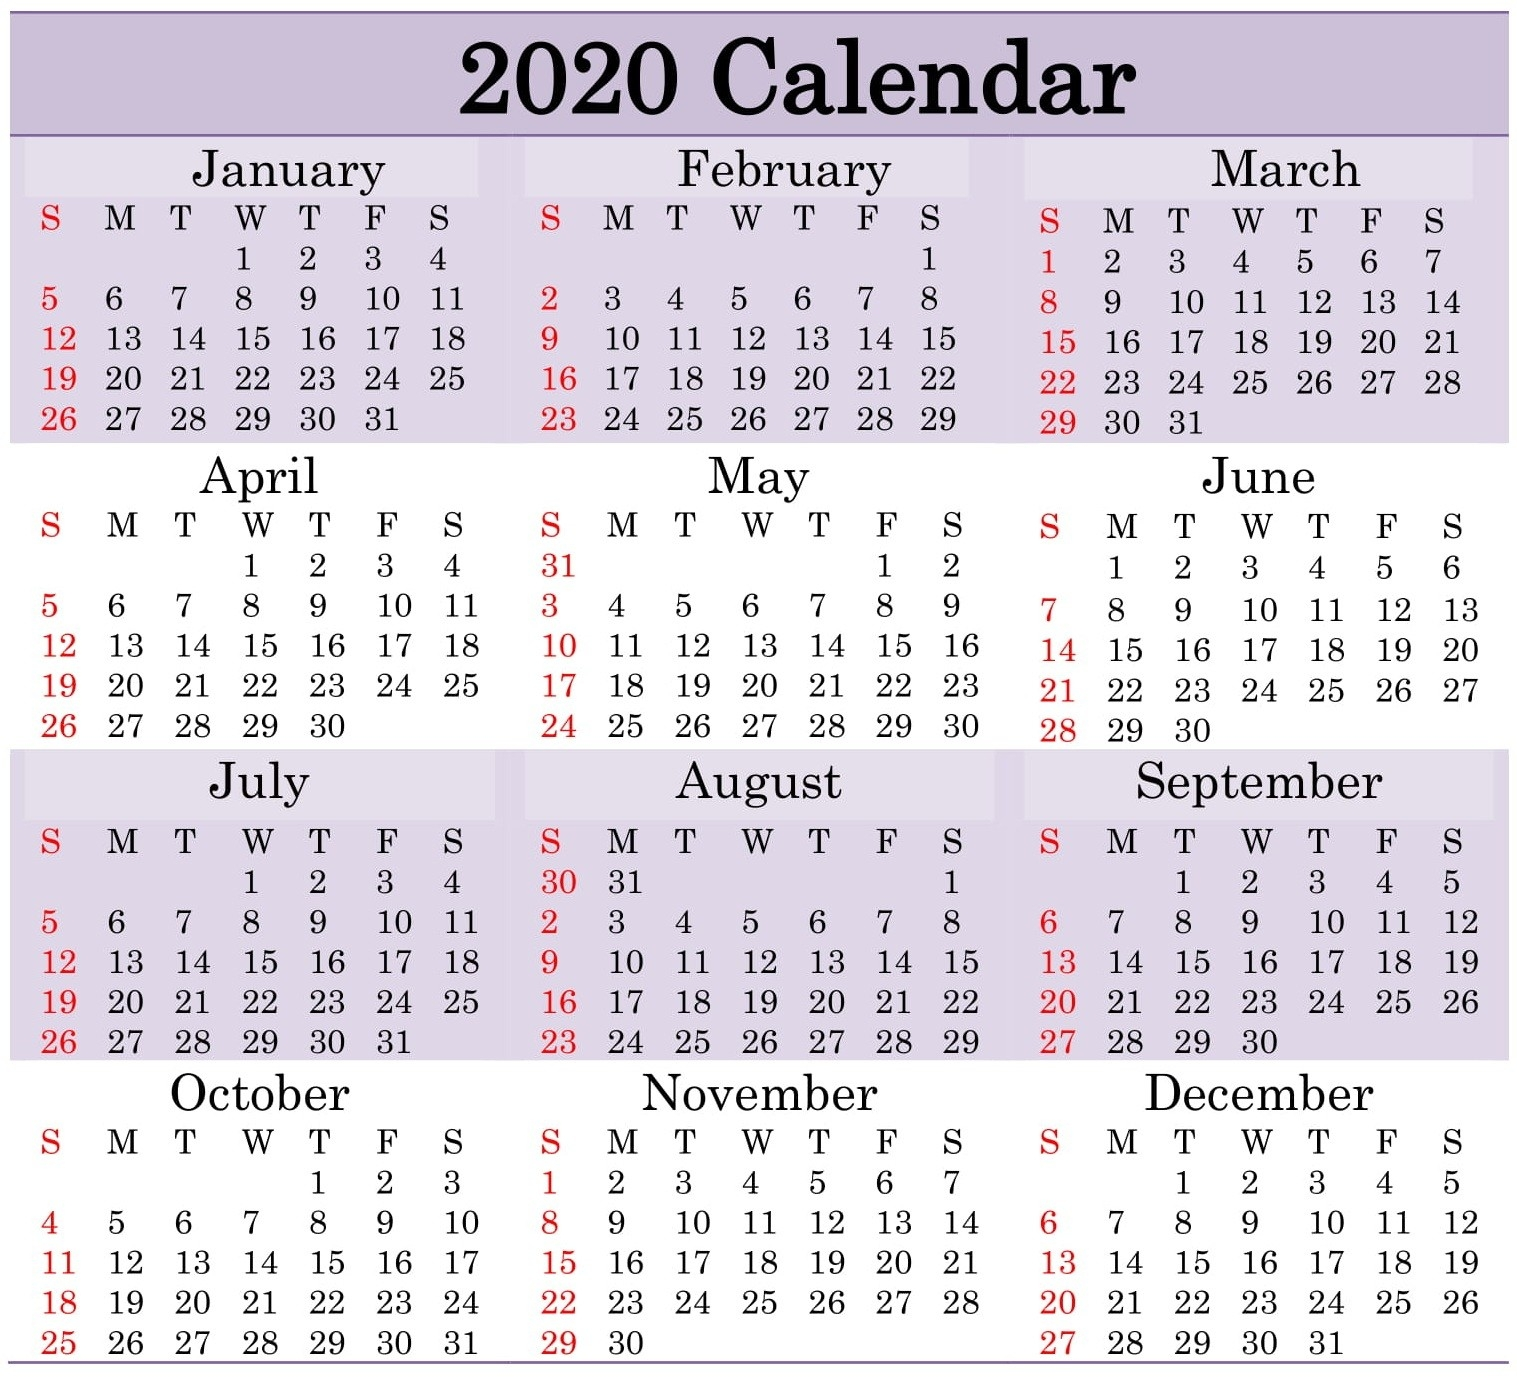 Printable 2020 Calendar Word Document - Latest Printable-Monthly Calendar With Julian Dates 2020